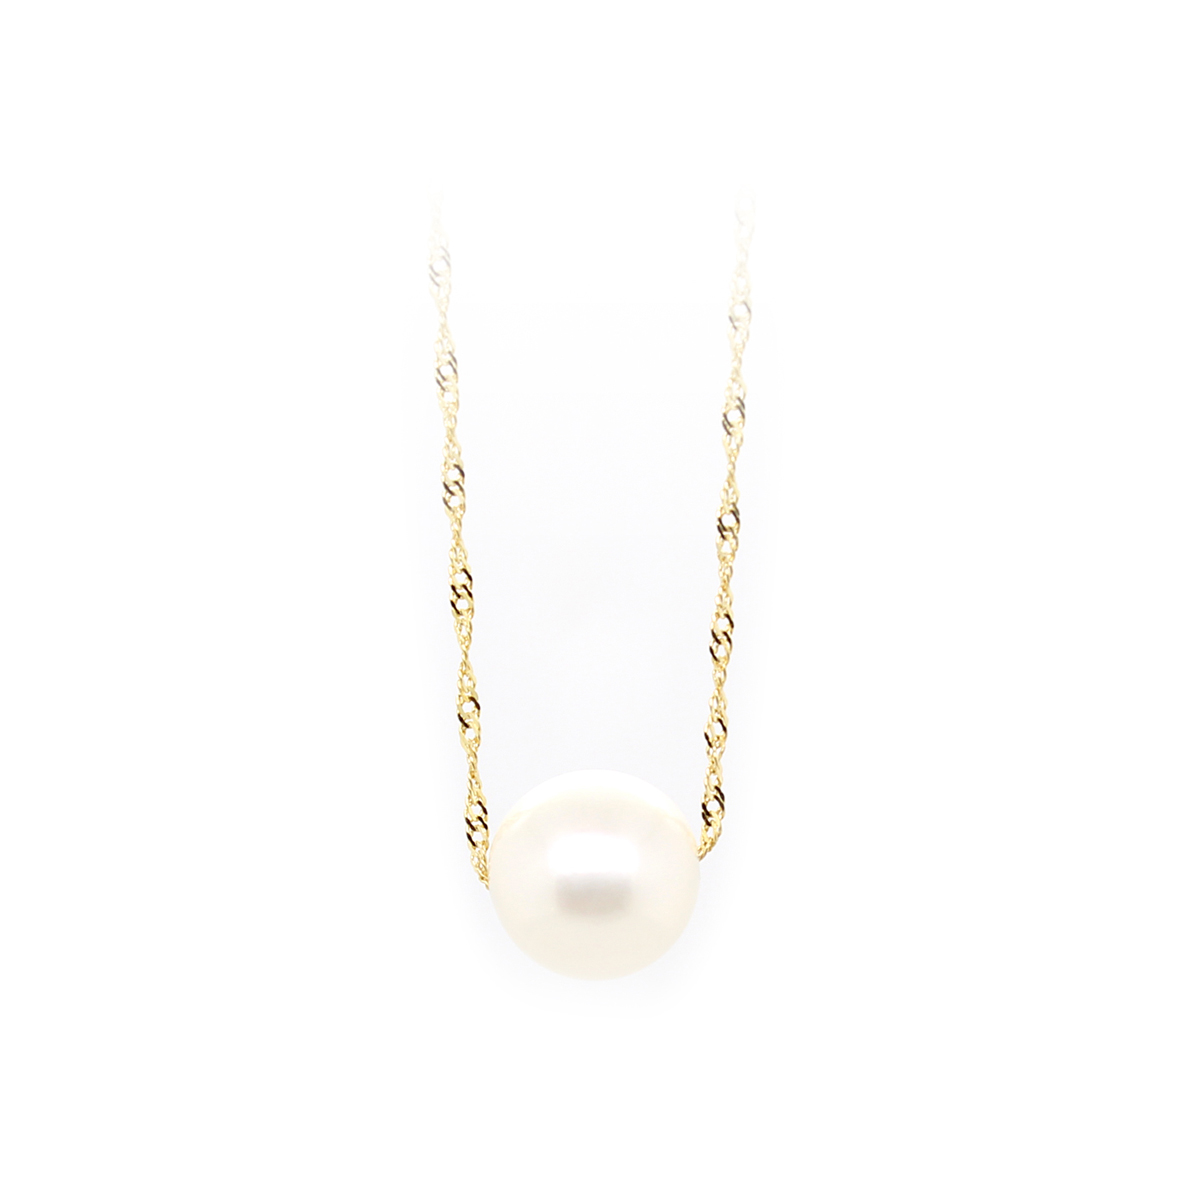 14 Karat Yellow Gold Twisted Serpentine Chain with One White Pearl